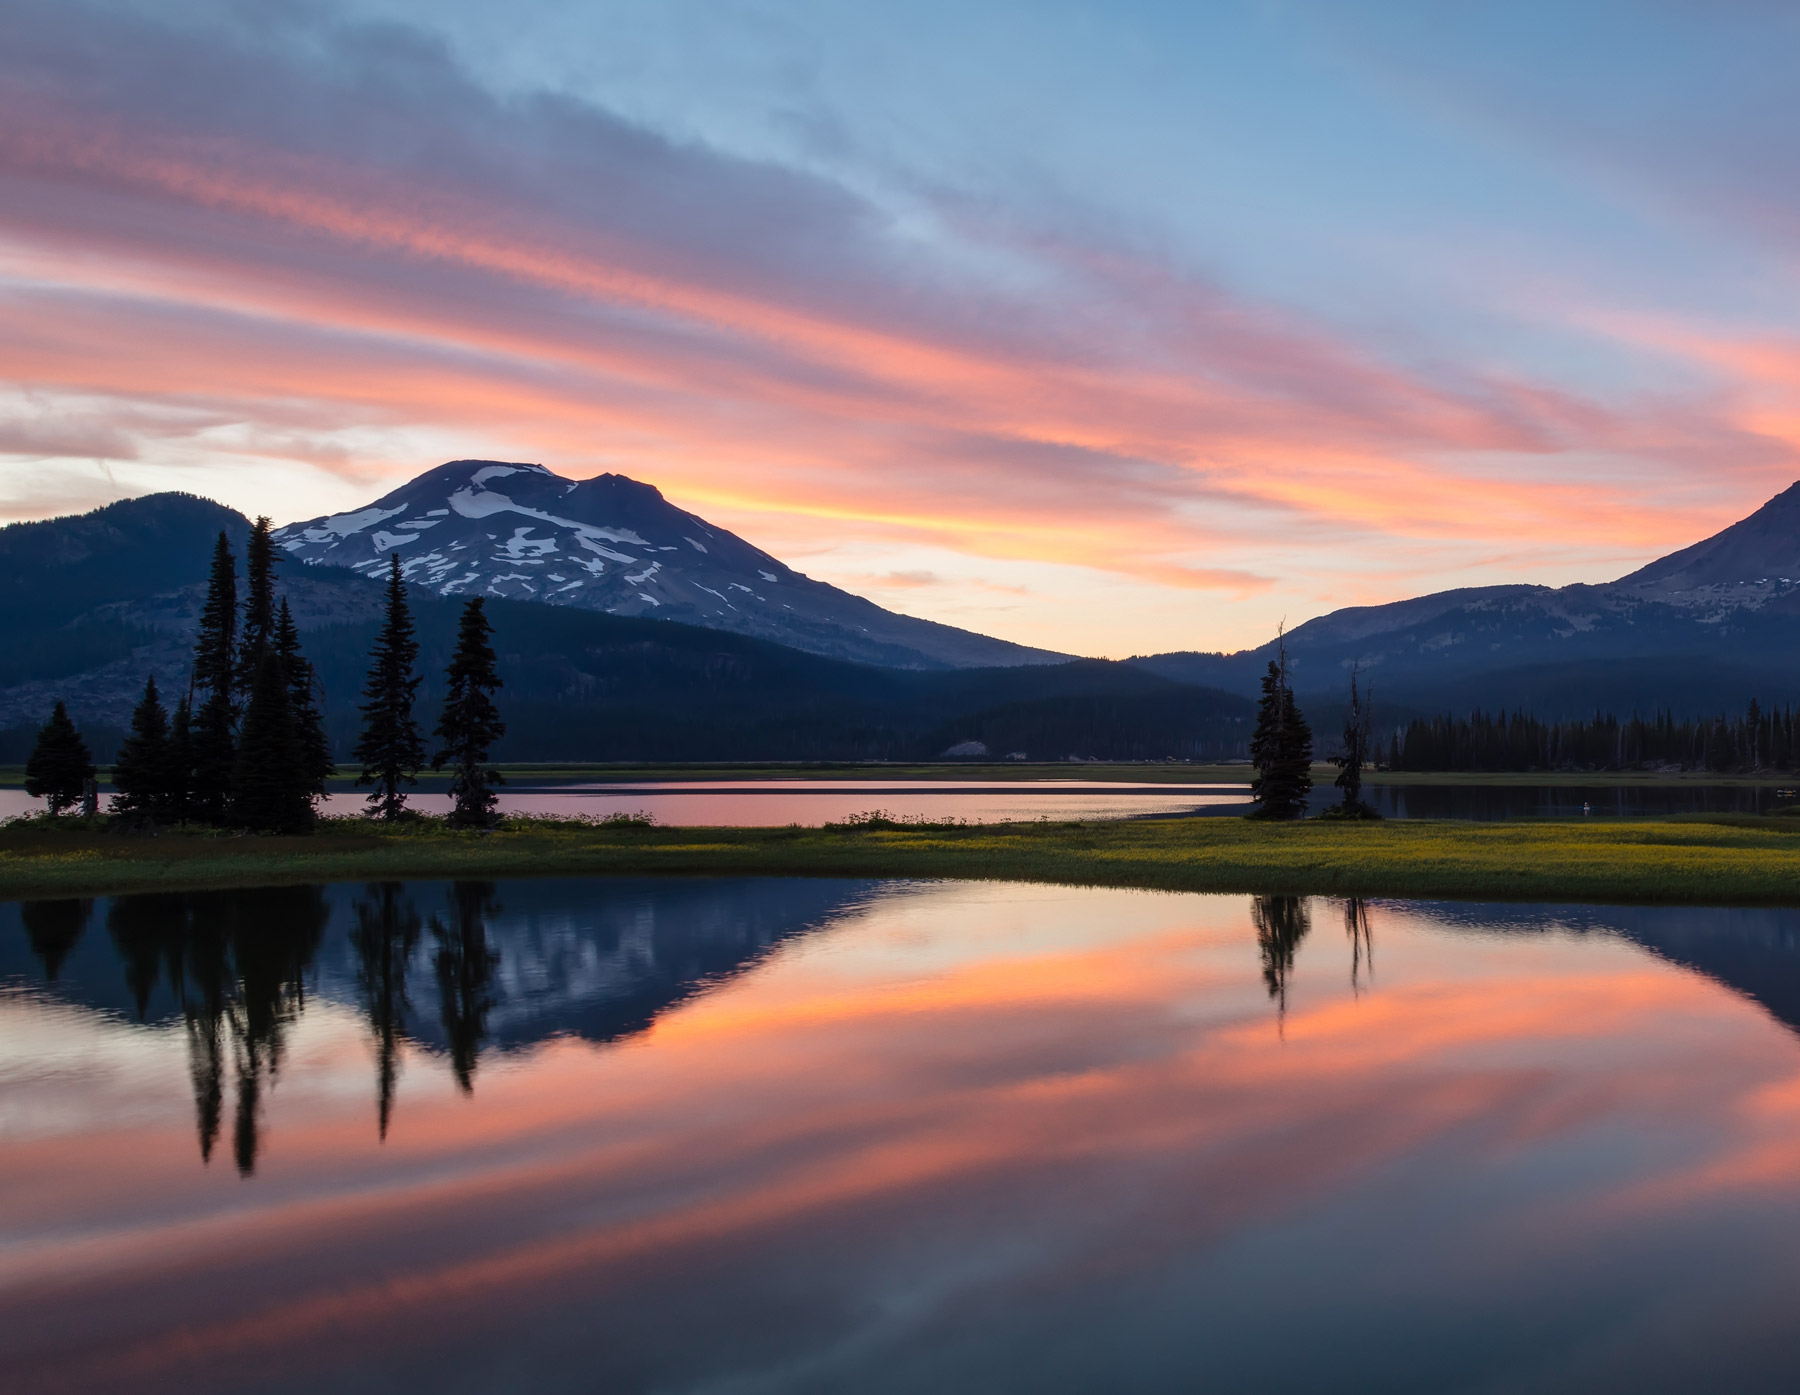 Sunset mountain view over water; central oregon real estate